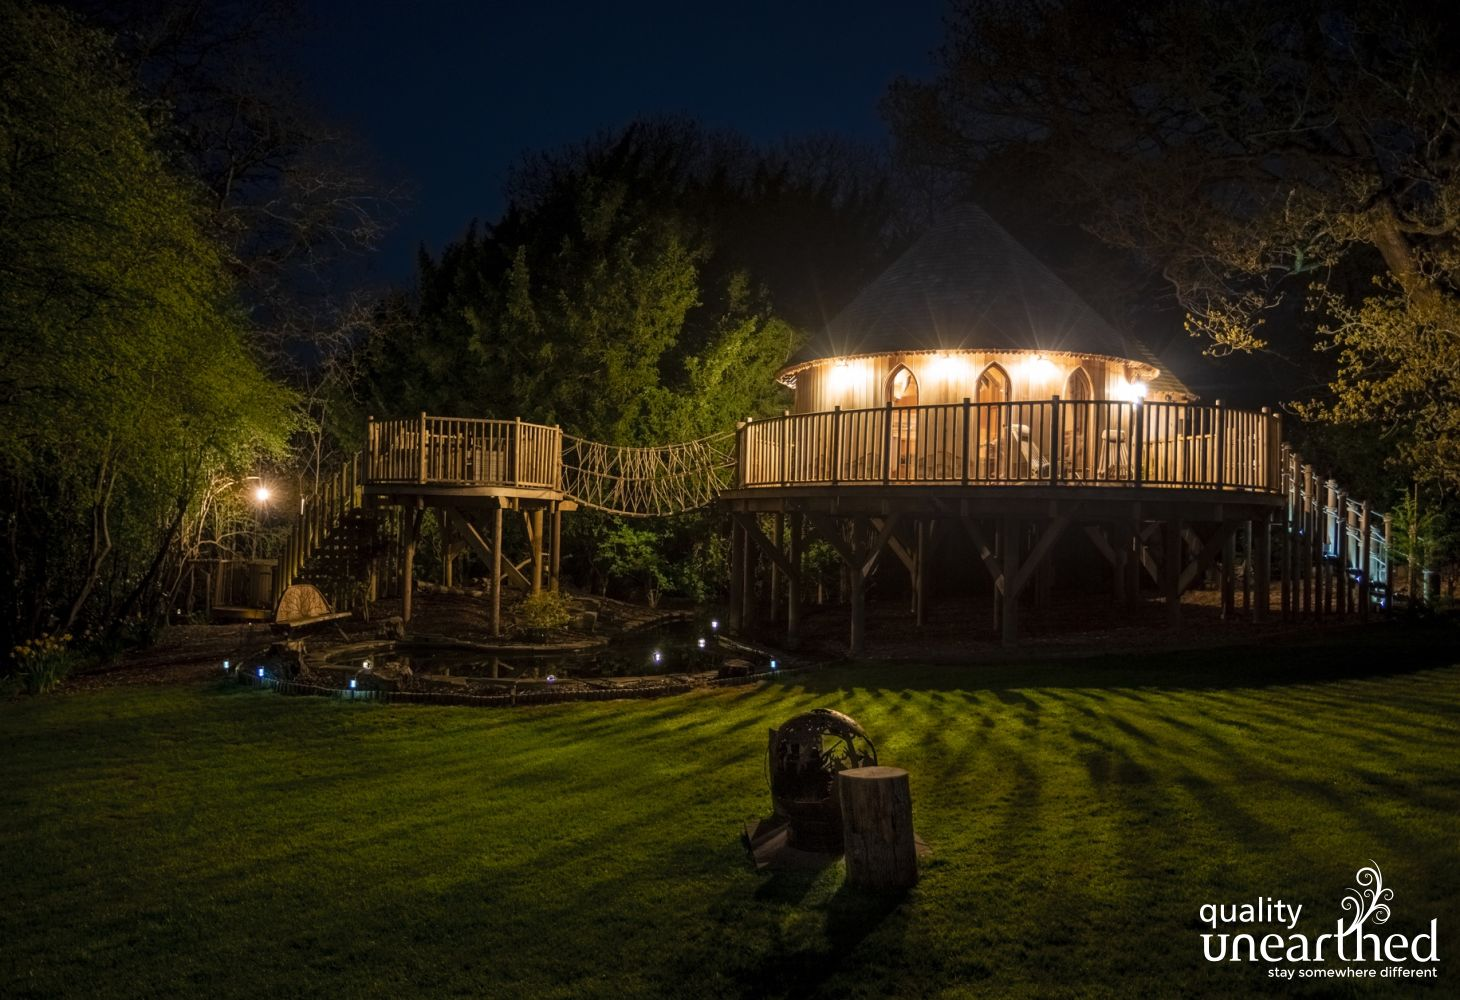 Nighttime at Trewalter Treehouse. The Dark skies of the Breacon Beacons envelop the cedar treehouse and hot tub